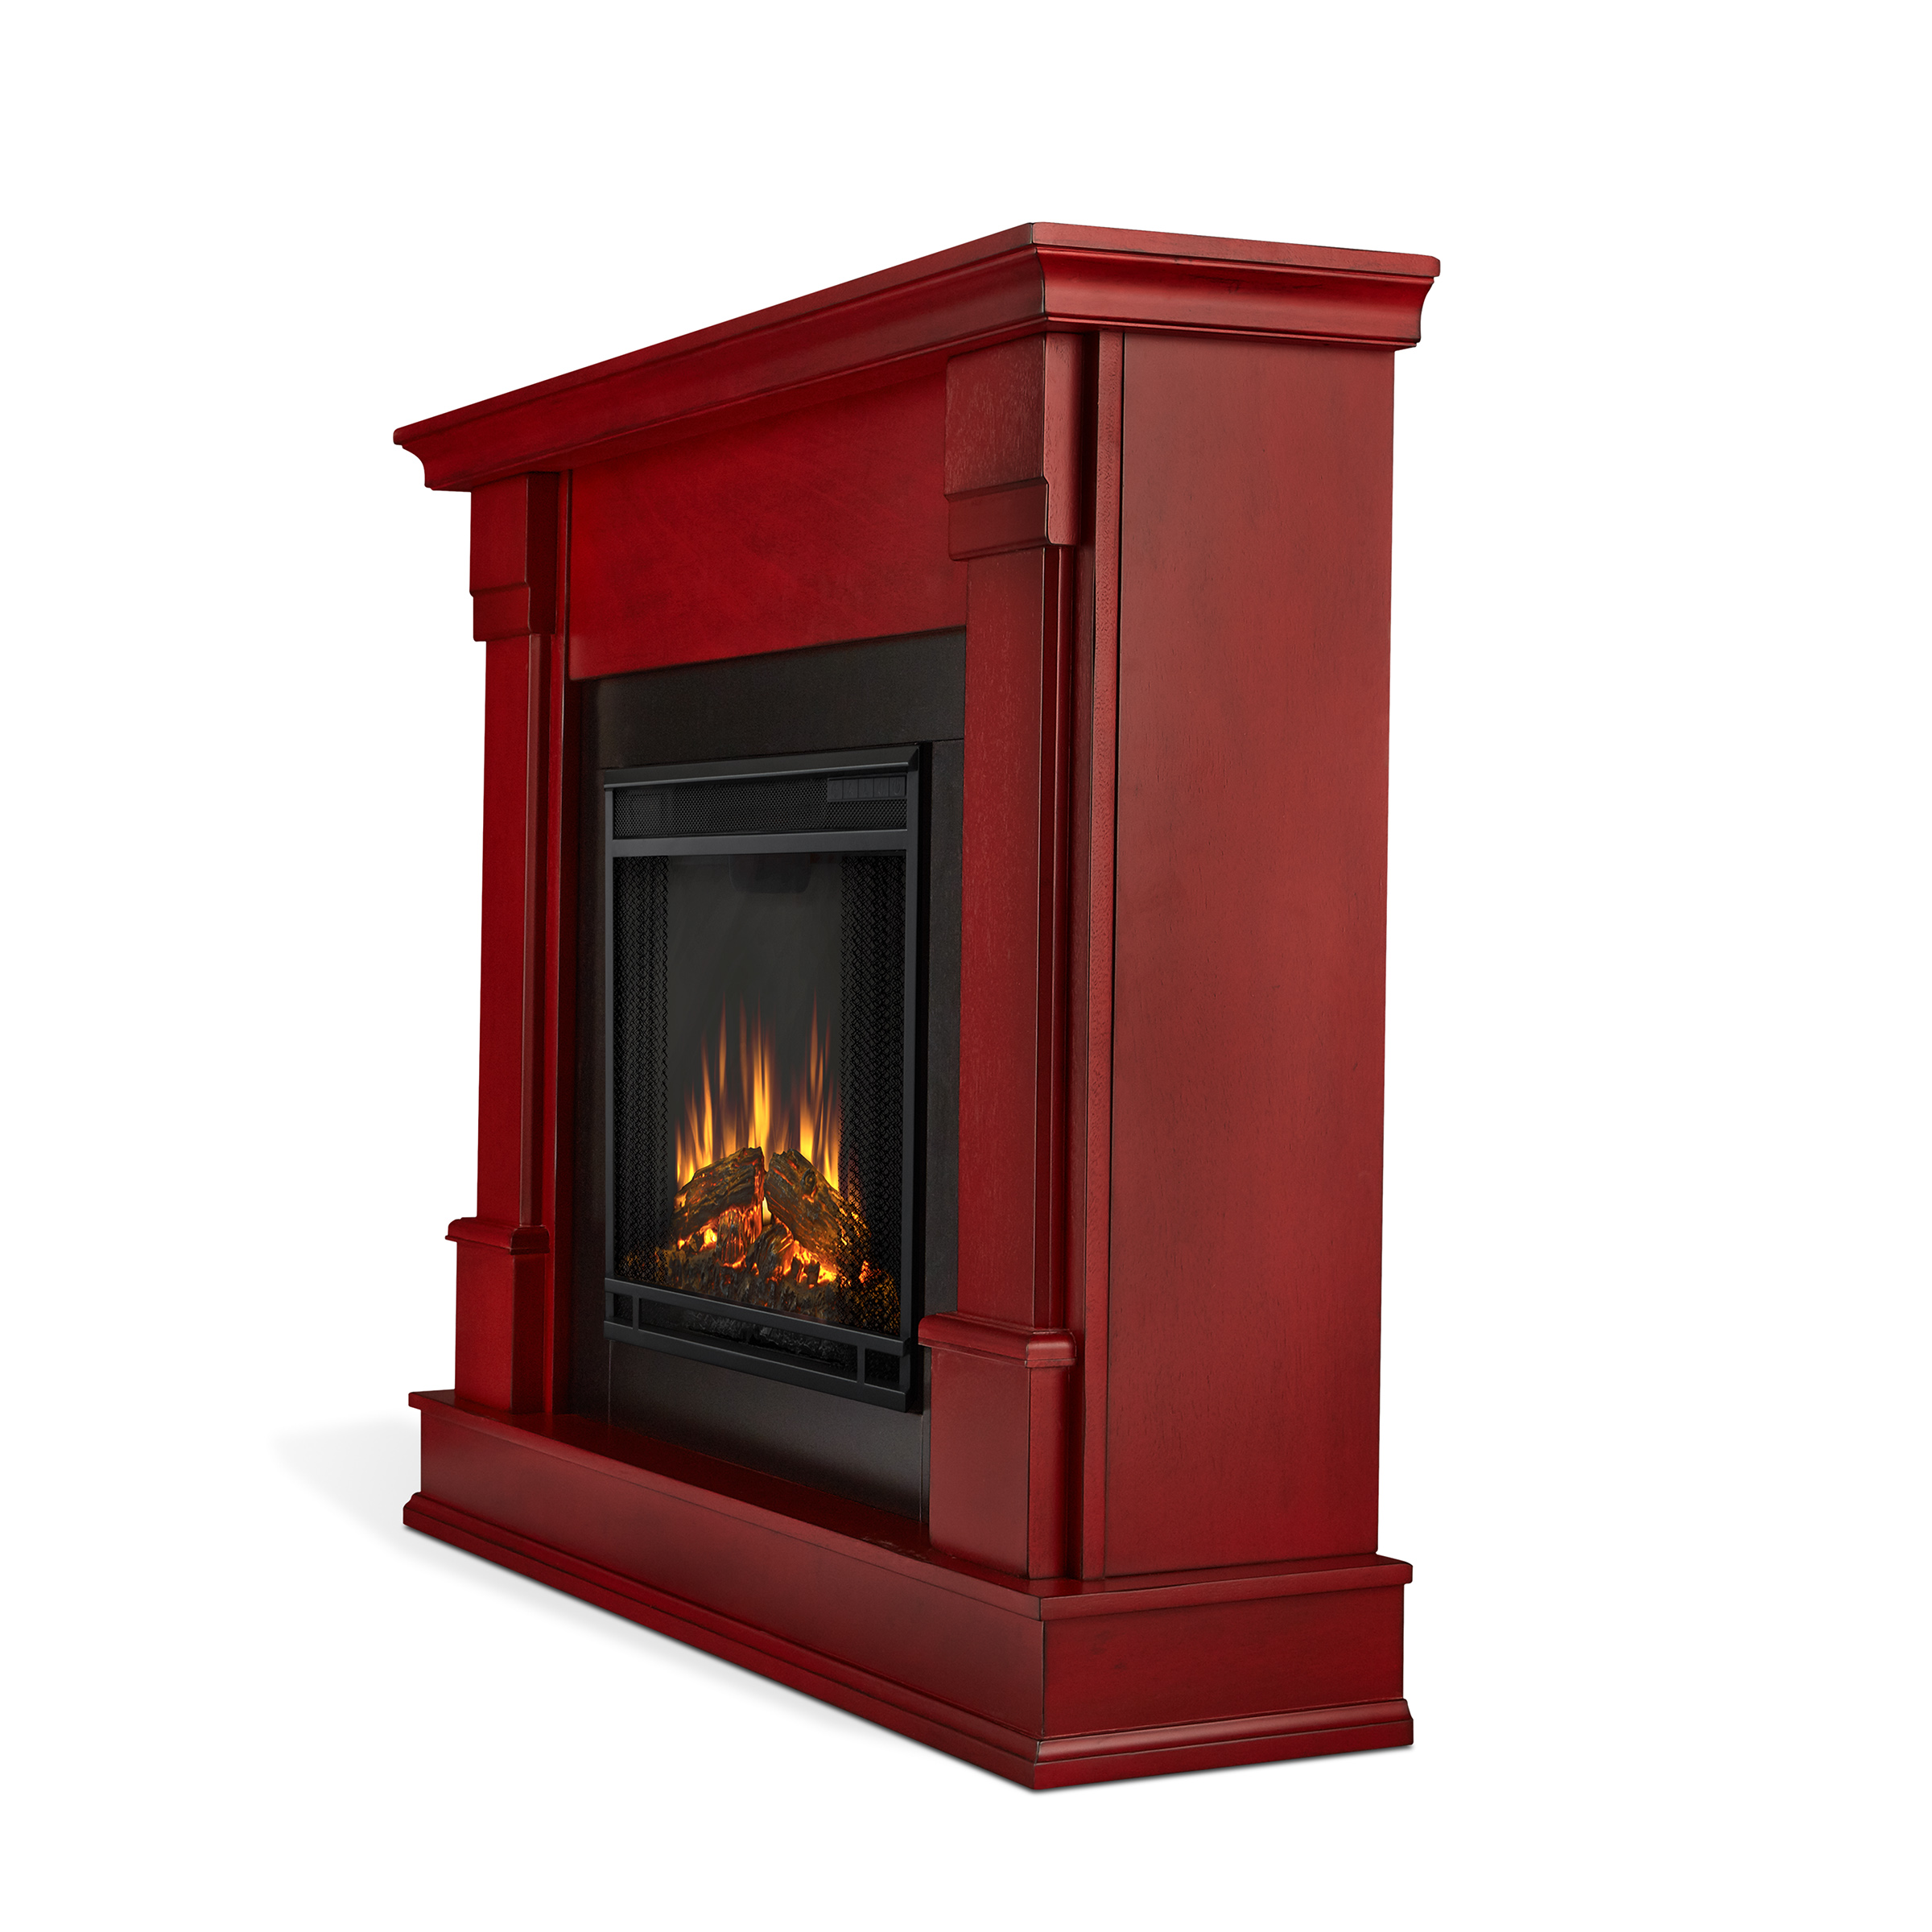 silverton electric fireplace in black by real flame walmart com rh walmart com silverton electric fireplace white by real flame silverton electric fireplace in white